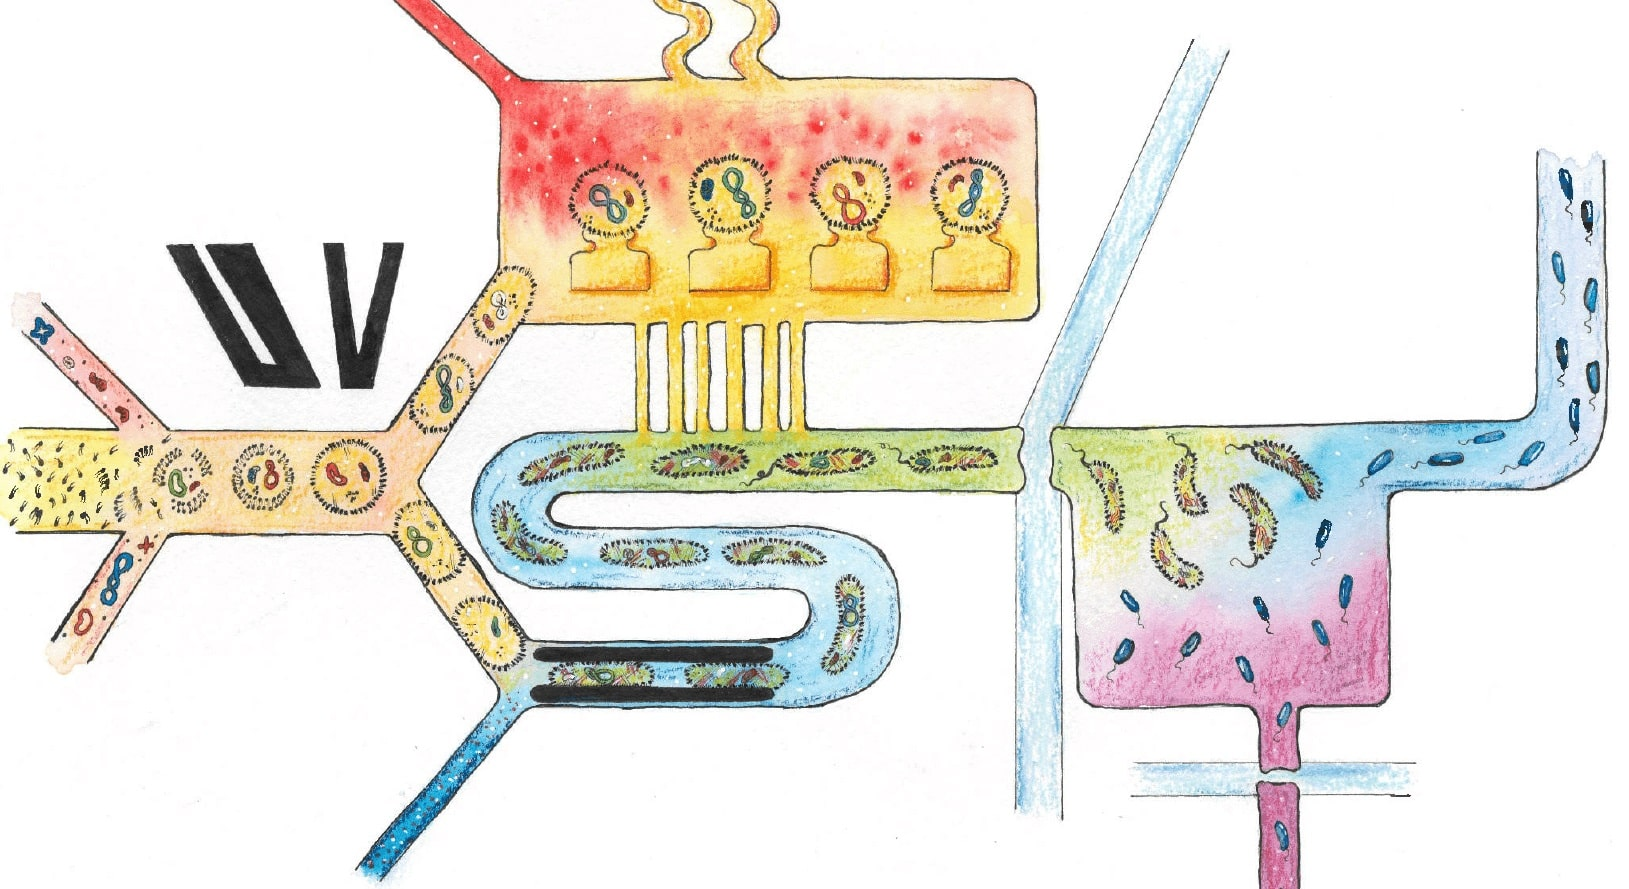 How could microfluidic techniques be used to improve artificial cell development?